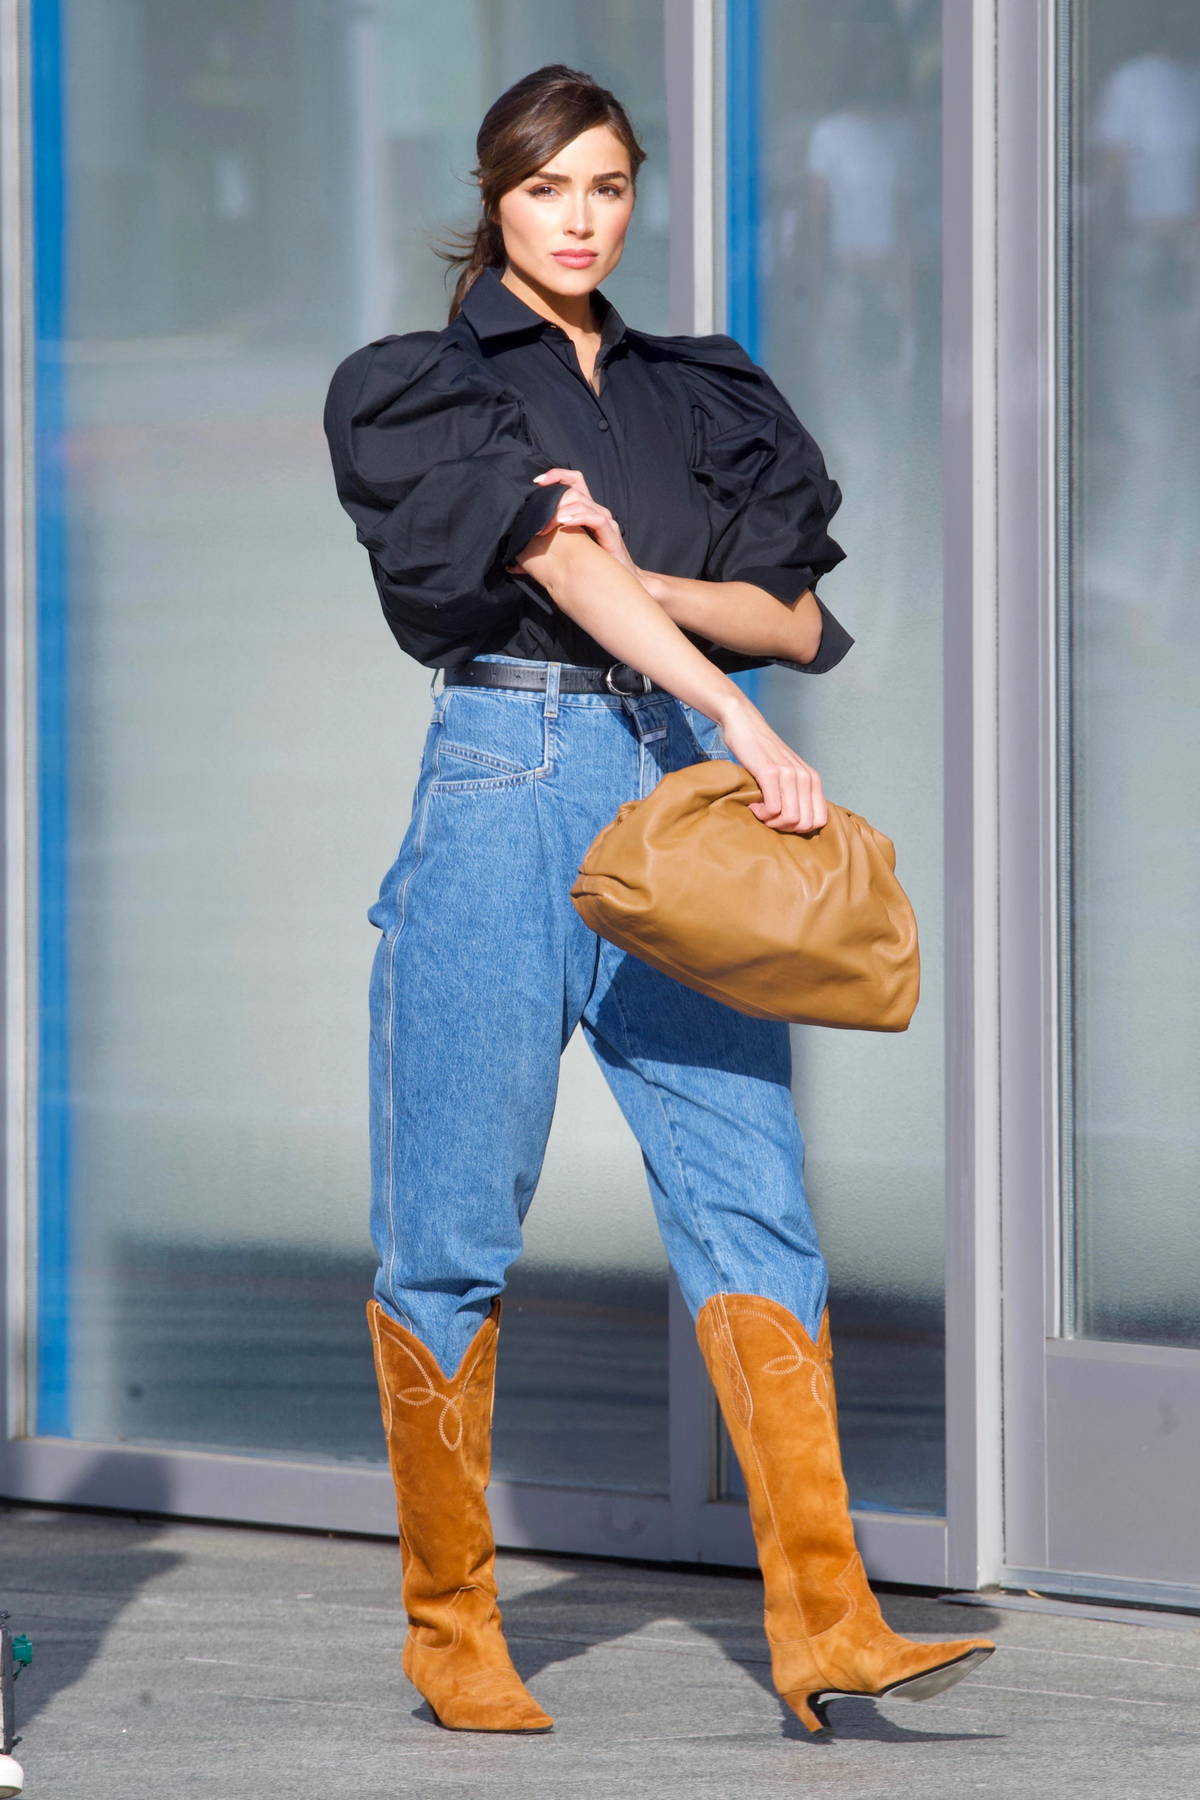 Olivia Culpo looks stunning a frilly black shirt and high-waisted jeans while out shopping at Valentino in Beverly Hills, California